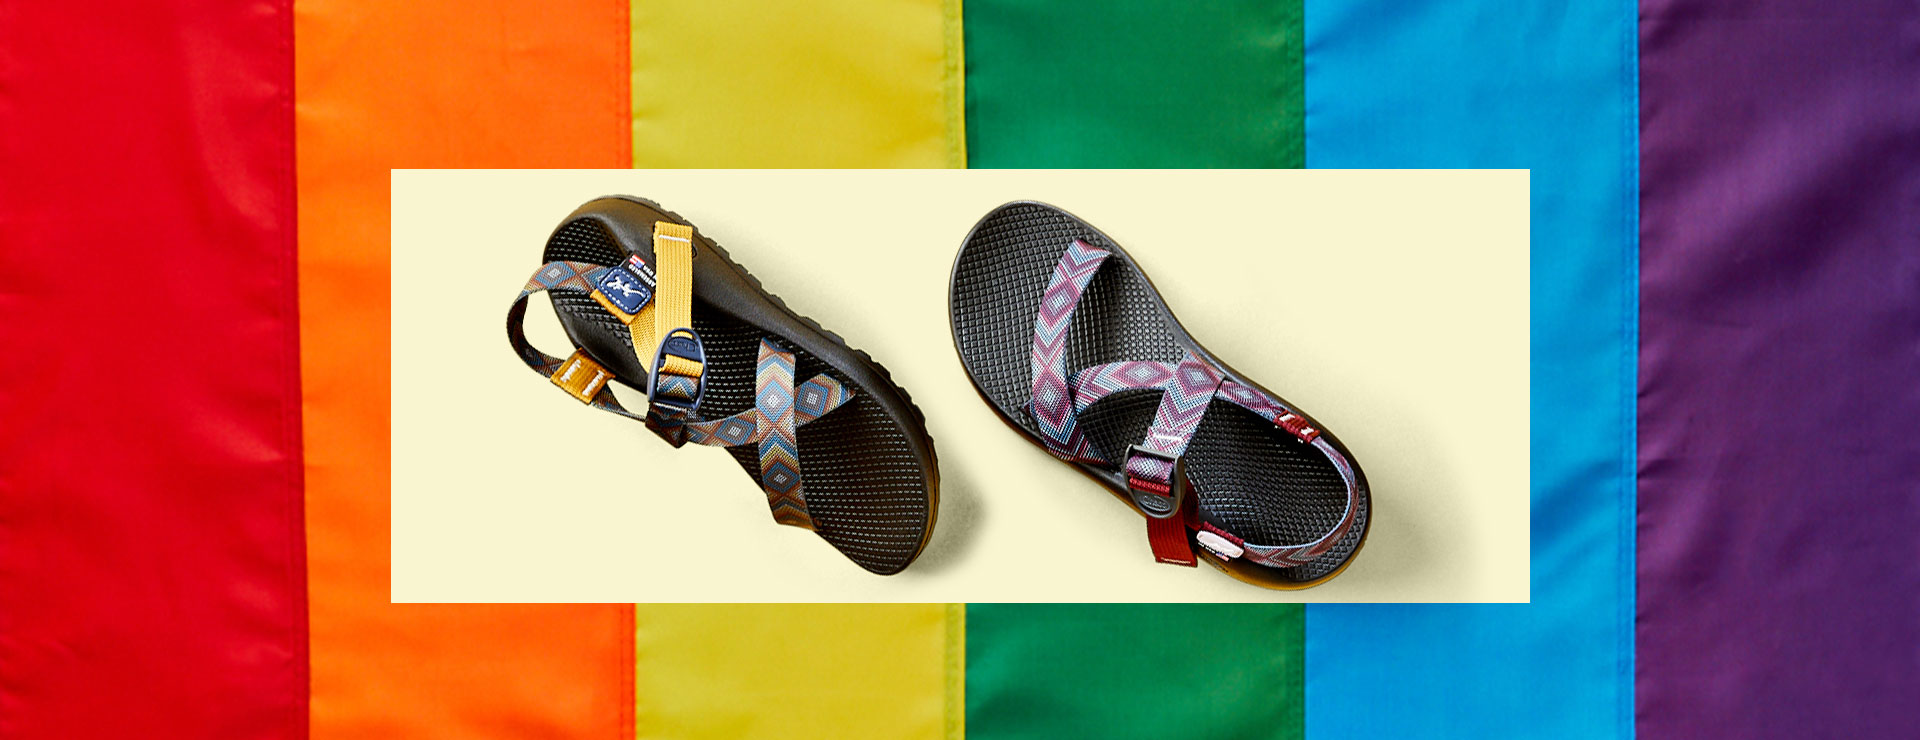 Several colorful styles of Chaco sandals over a rainbow flag.